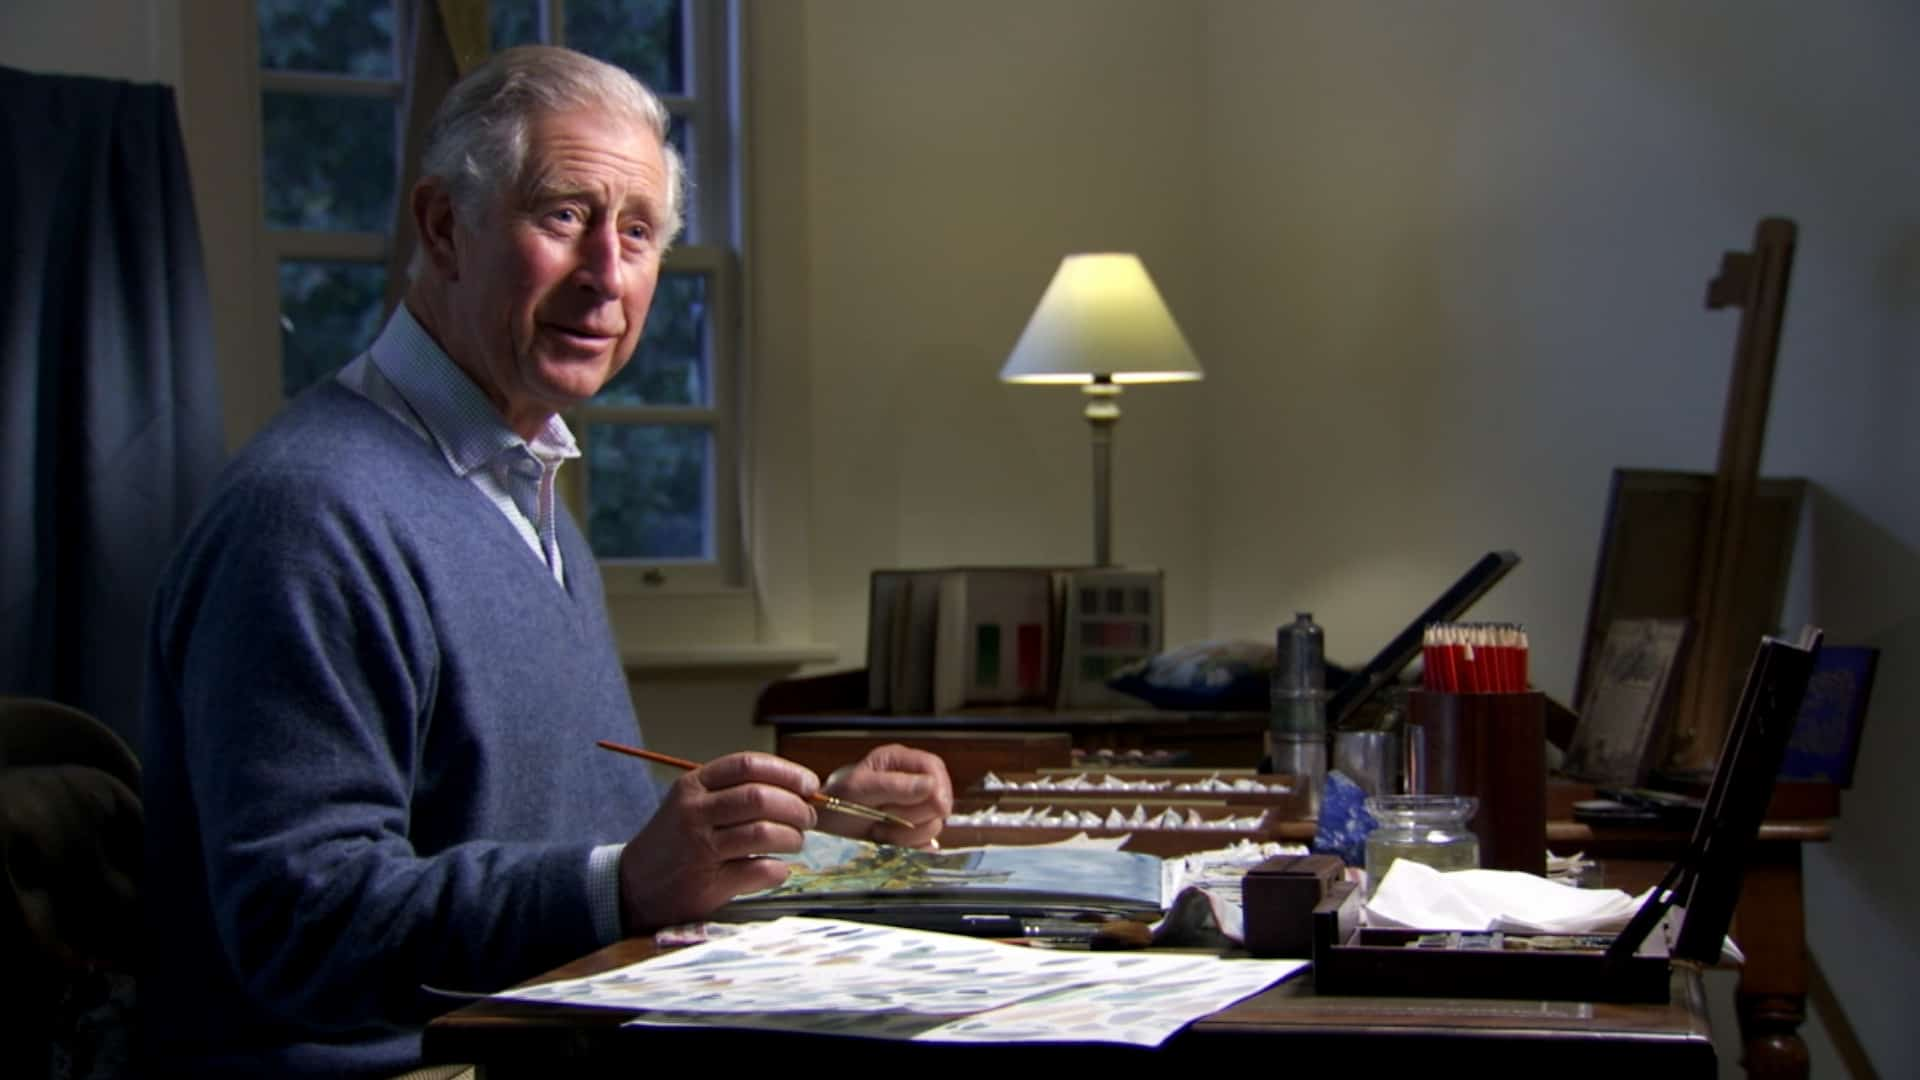 HRH The Prince of Wales during the filming of Royal Paintbox